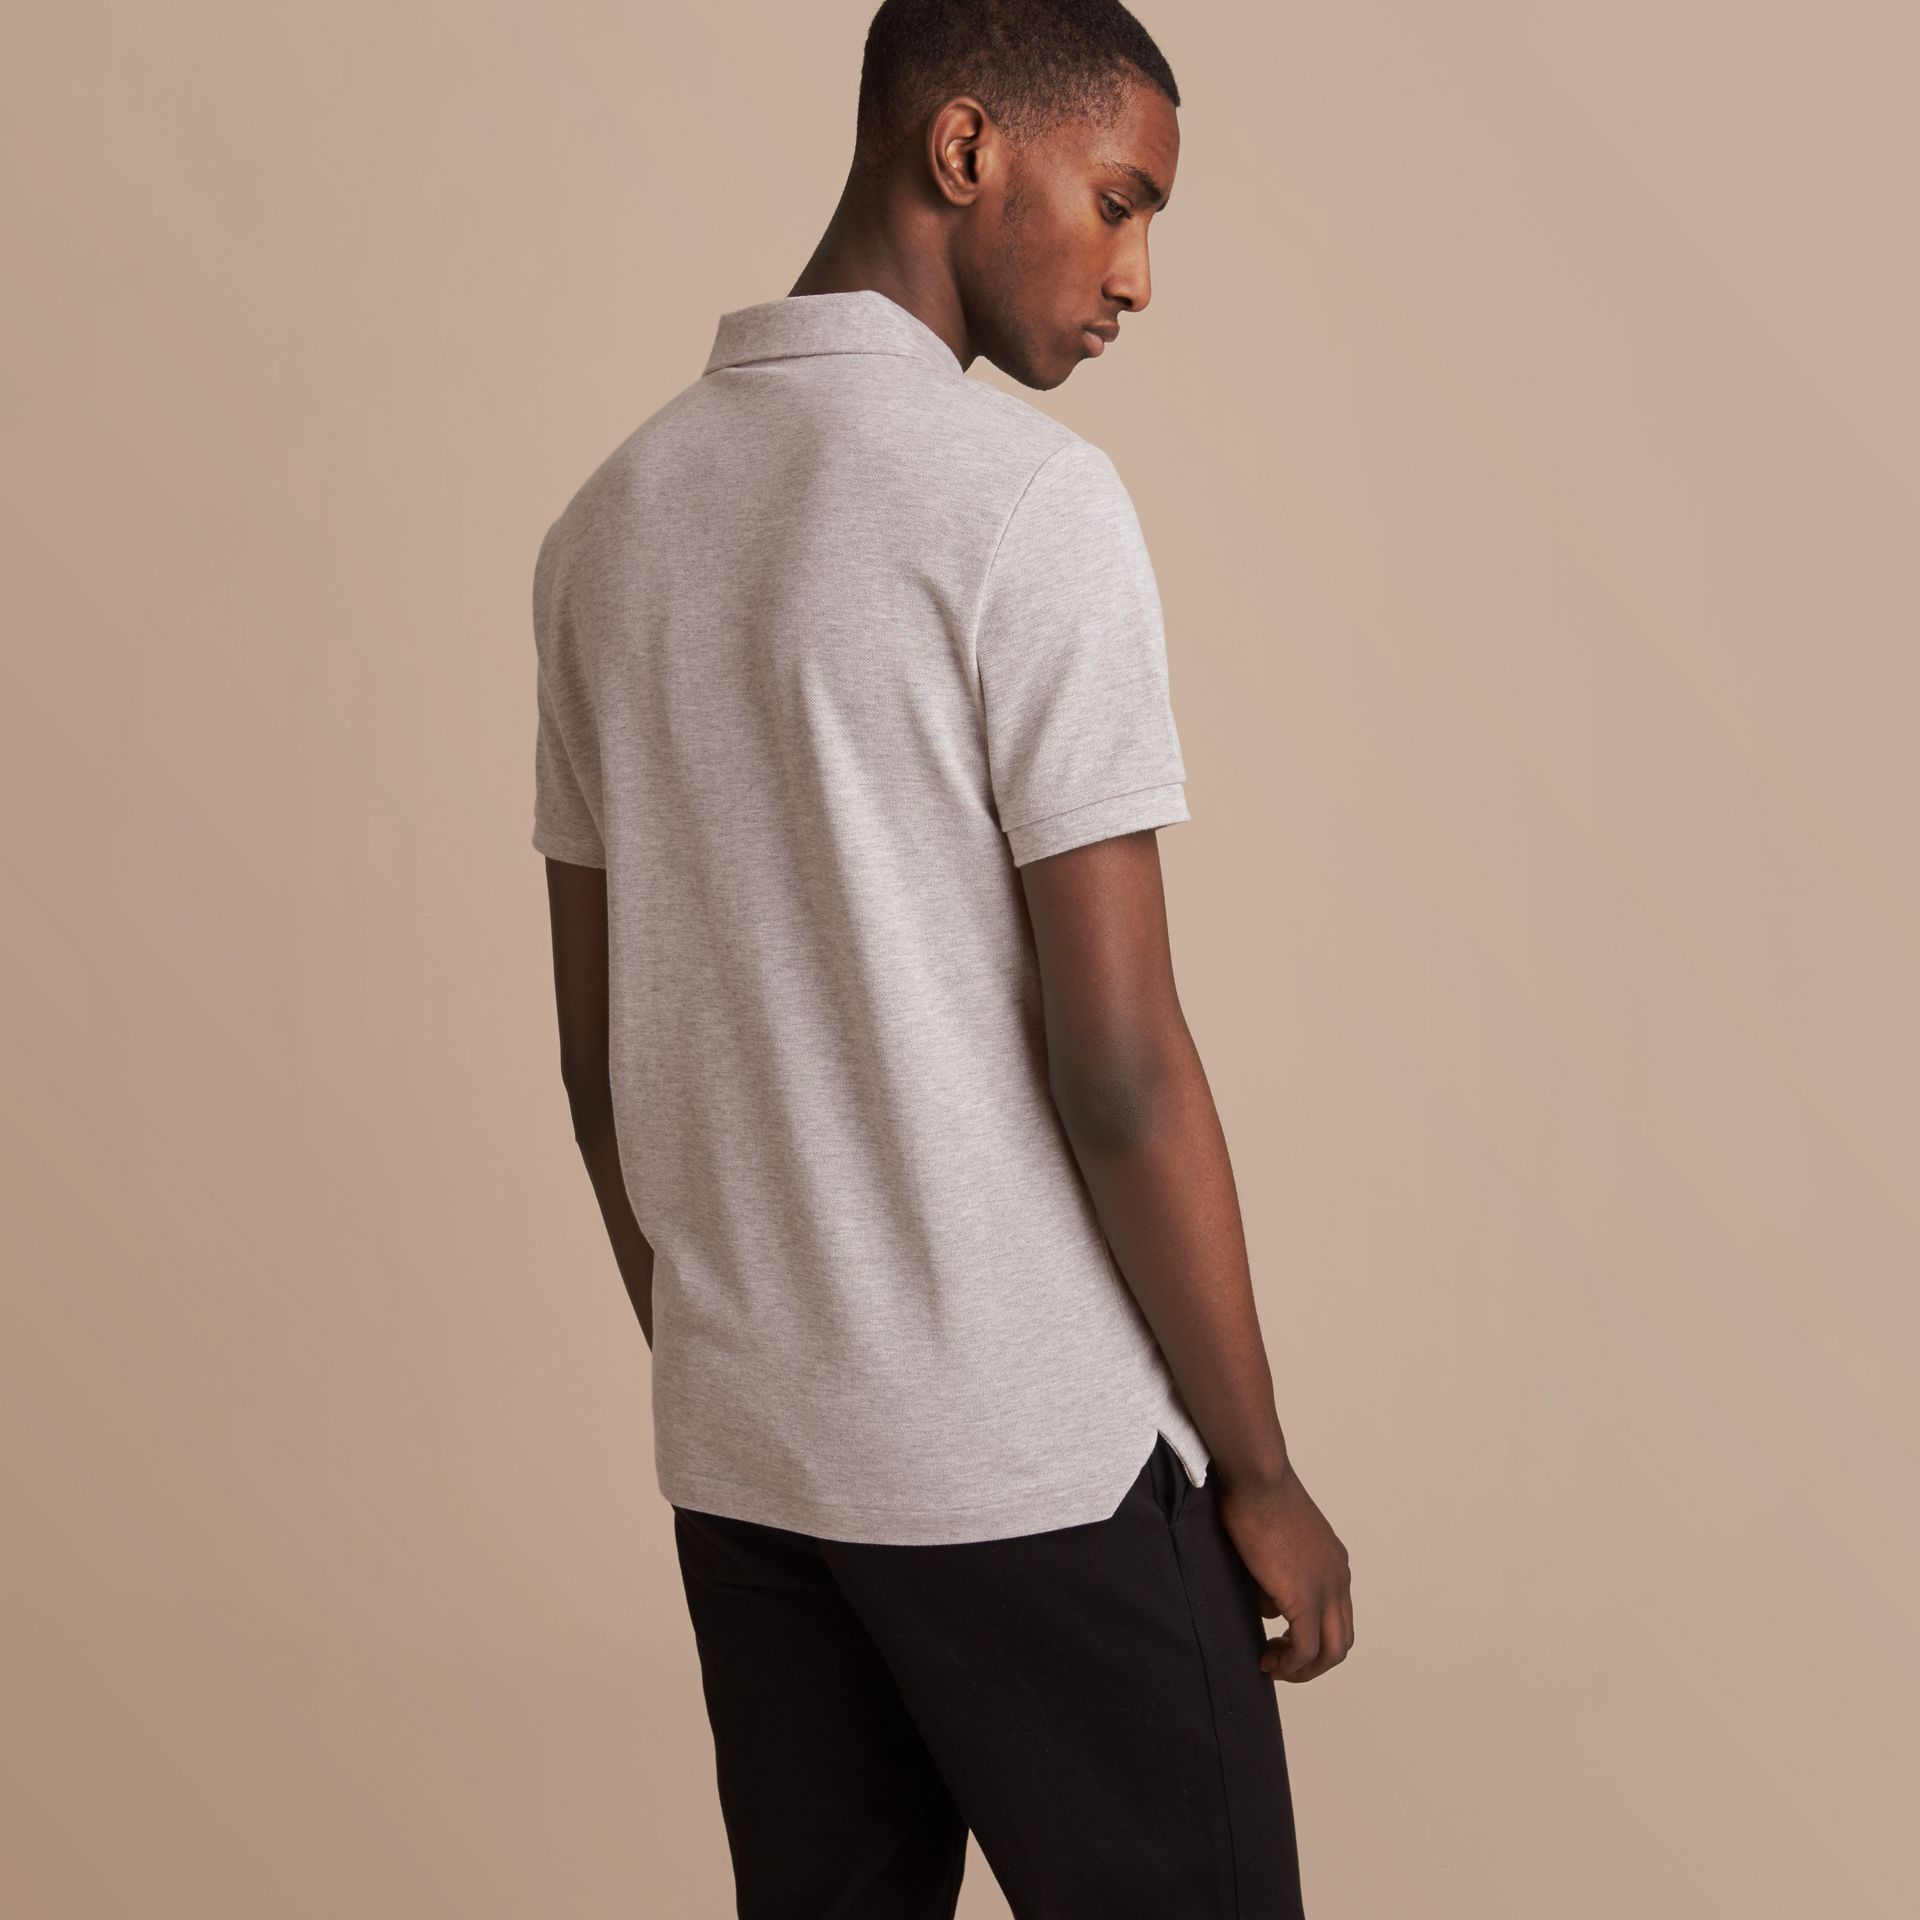 Pallas Heads Appliqué Cotton Polo Shirt in Pale Grey Melange - gallery image 3